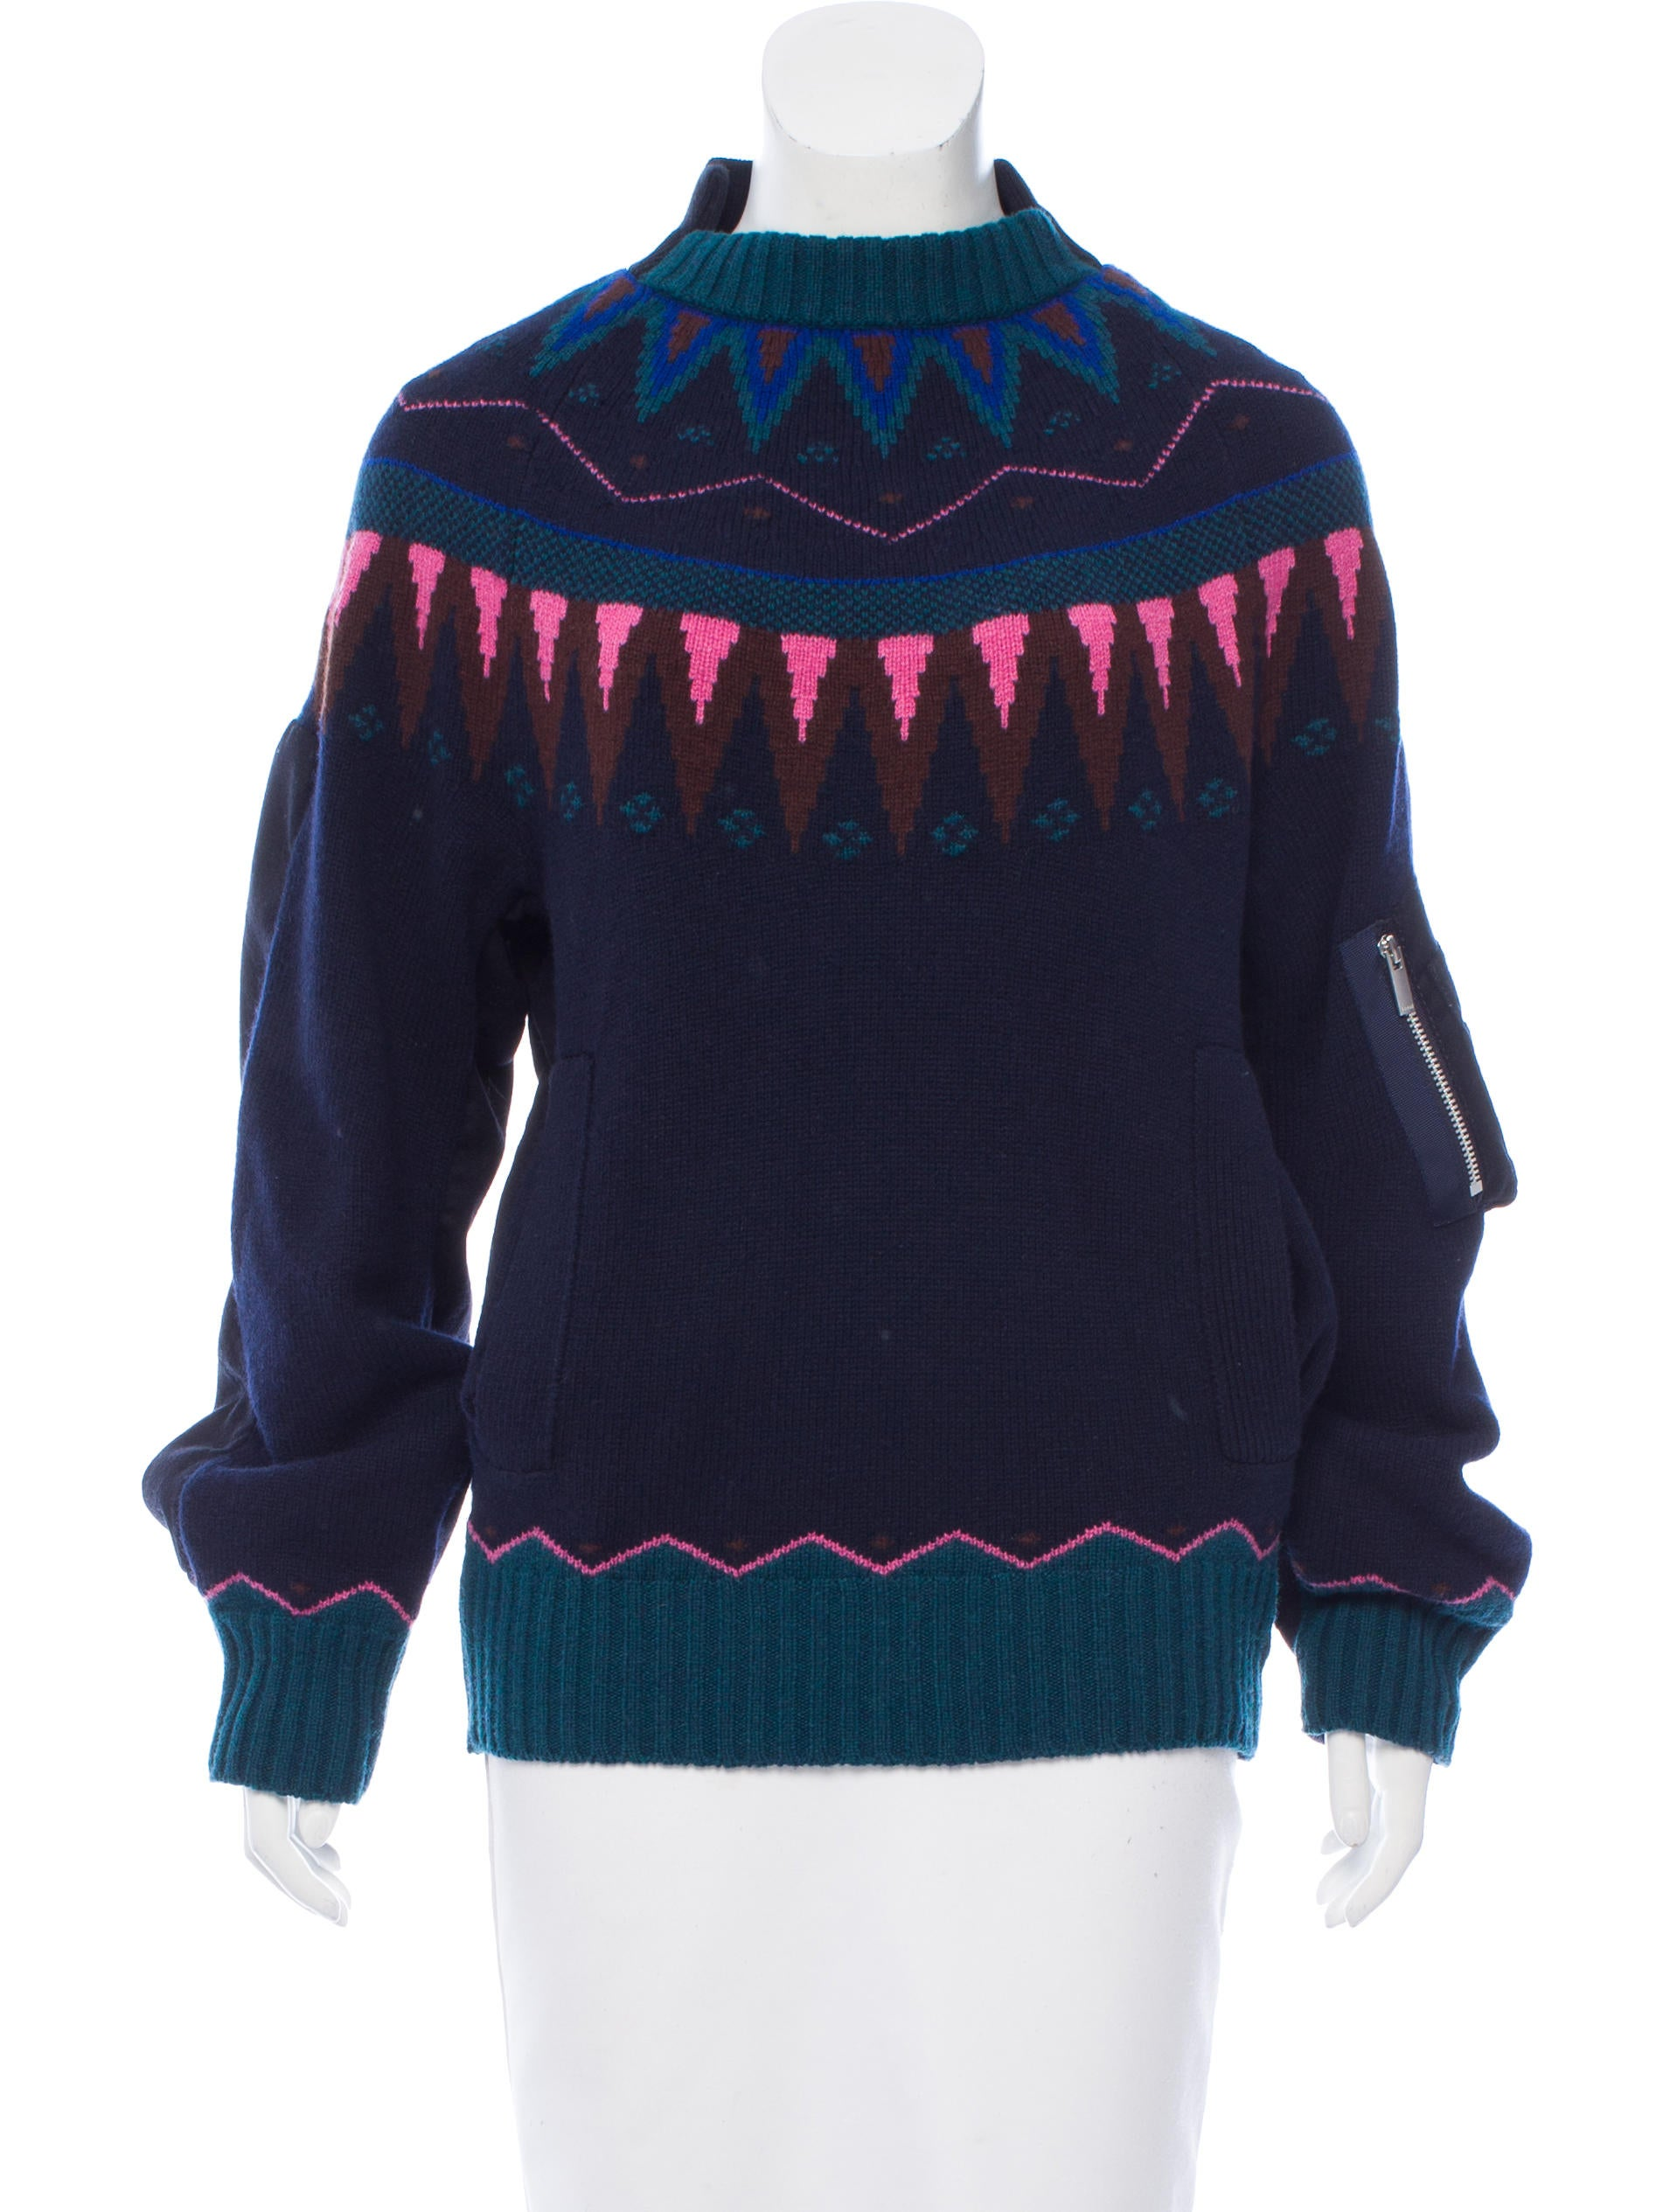 Sacai Wool Fair Isle Sweater - Clothing - WS121665 | The RealReal